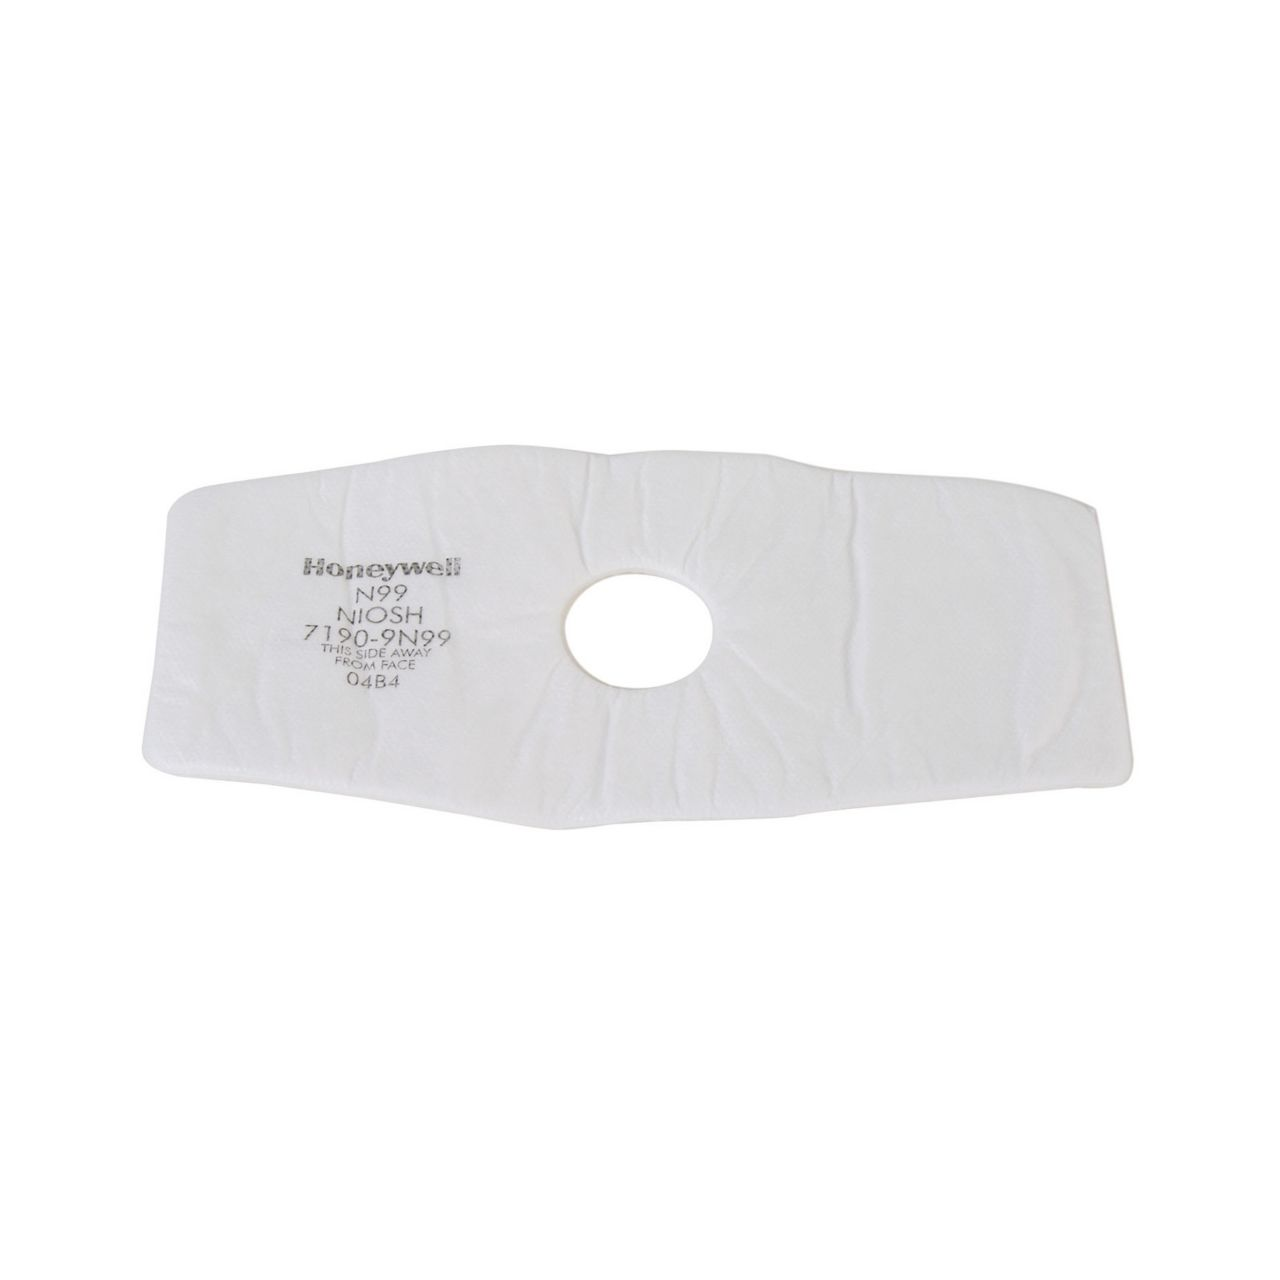 HS_7190_series_half_mask_(honeywell_brand)_replacement filter for 7190 welding mask